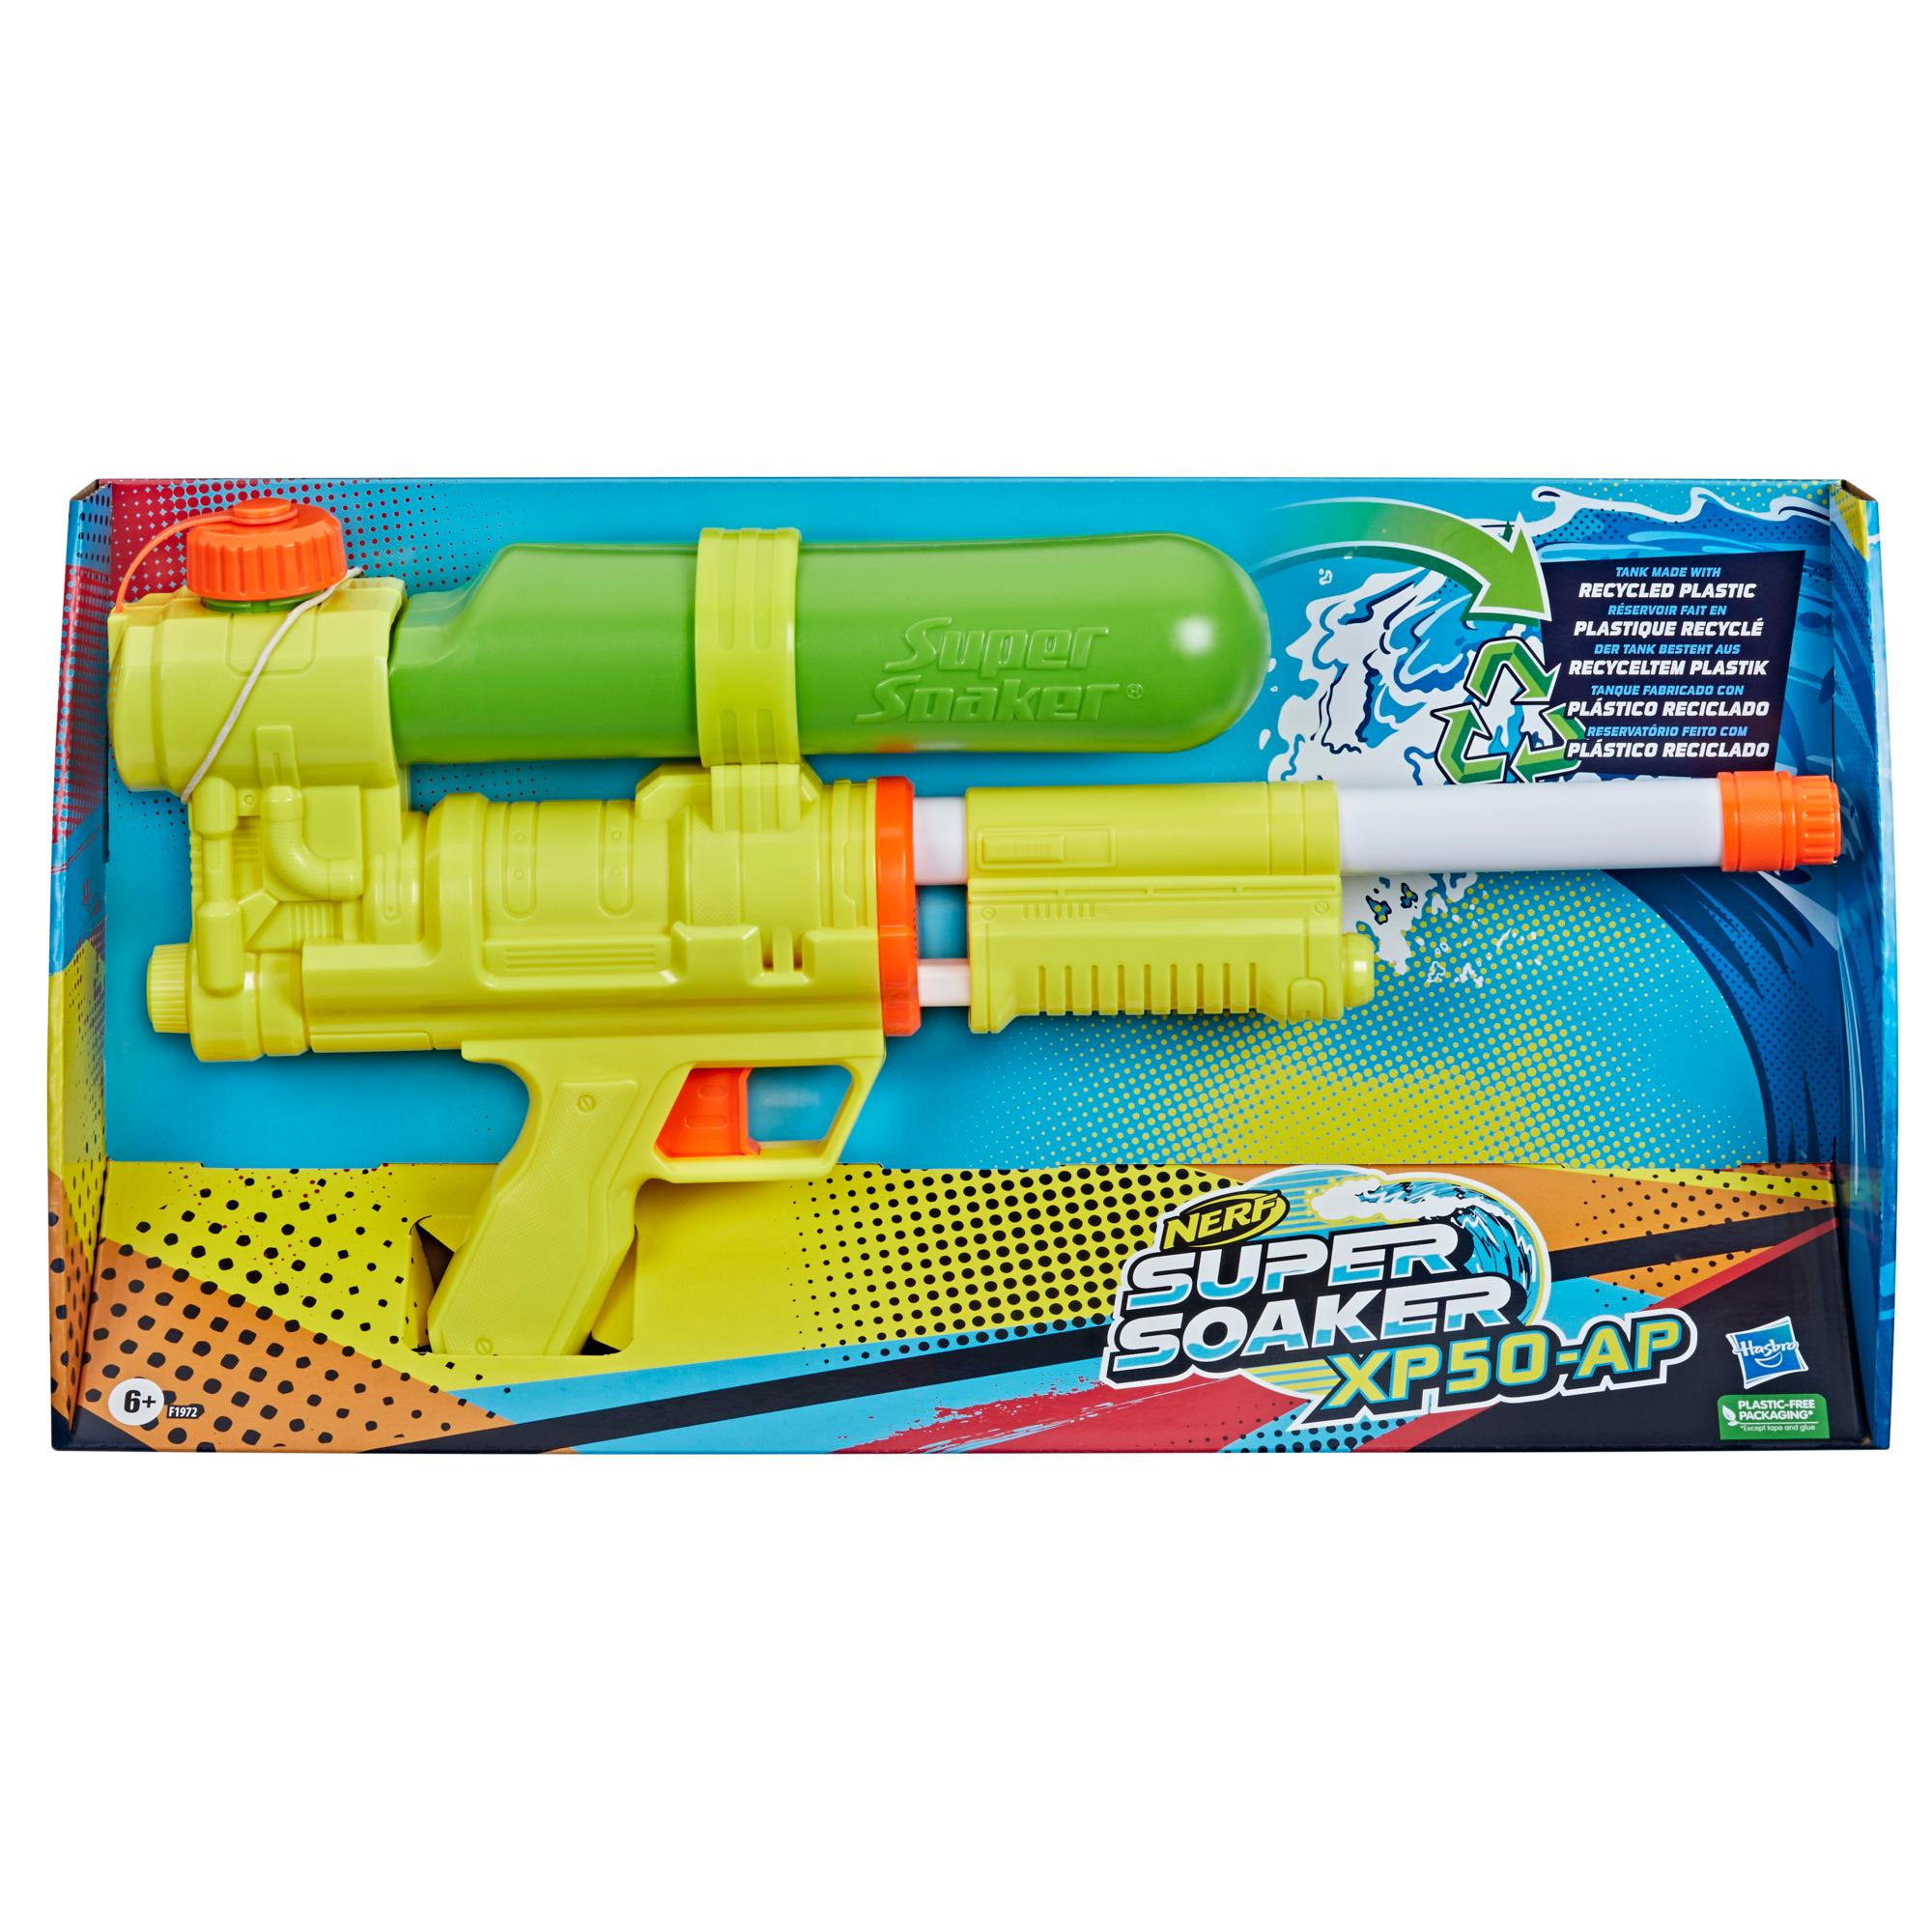 Nerf Super Soaker XP50-AP Water Blaster, Tank Made With Recycled Plastic, Air-Pressurized Continuous Water Blast